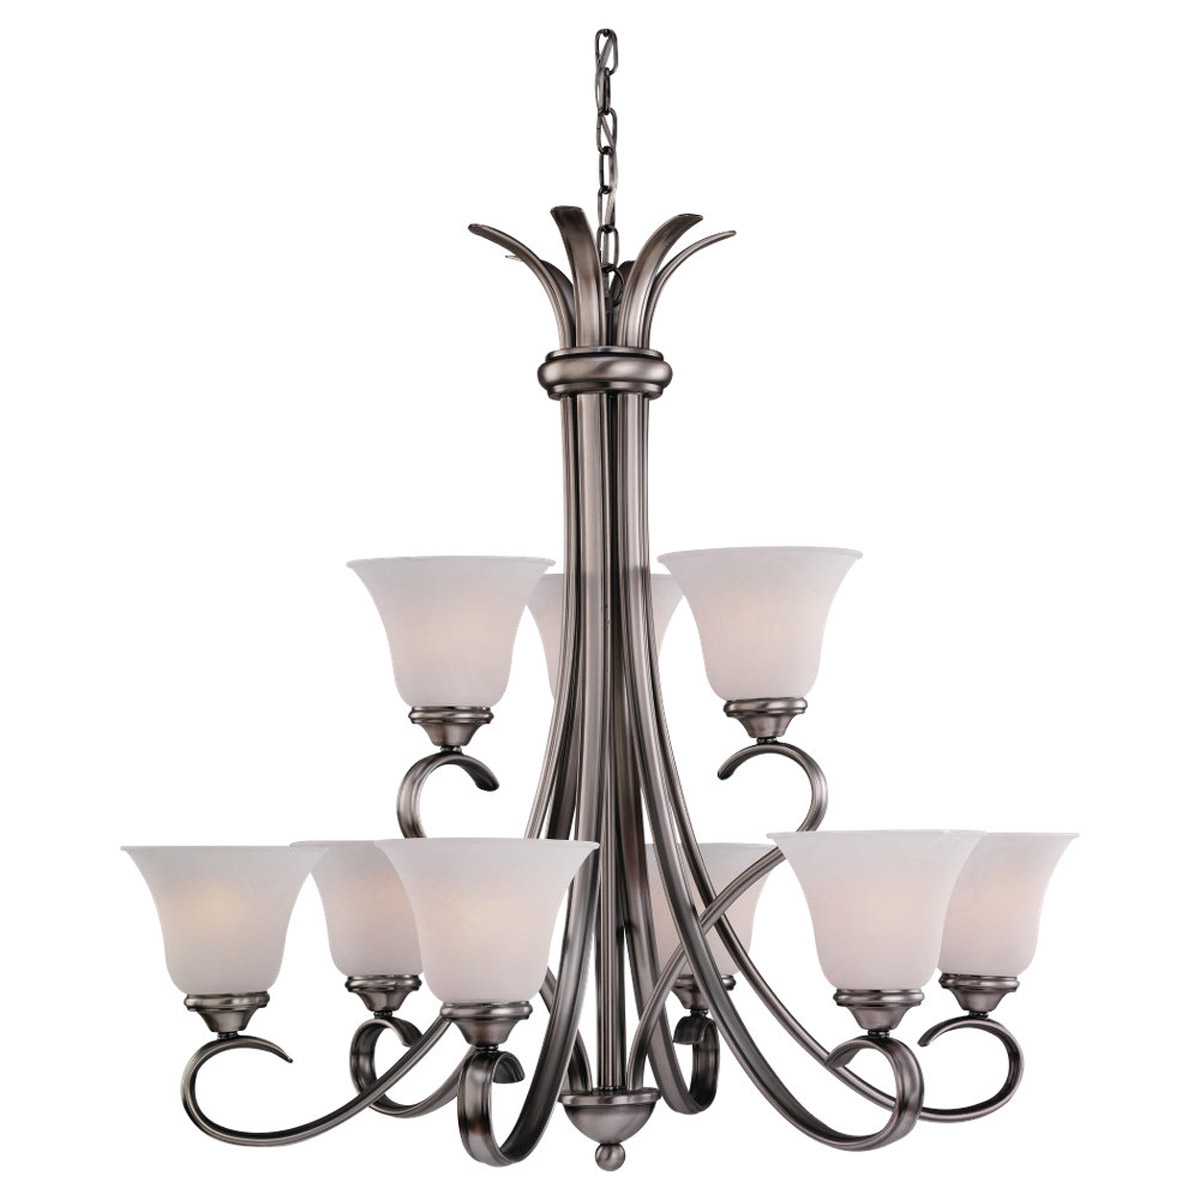 Sea Gull Lighting Rialto 9 Light Chandelier in Antique Brushed Nickel 31362-965